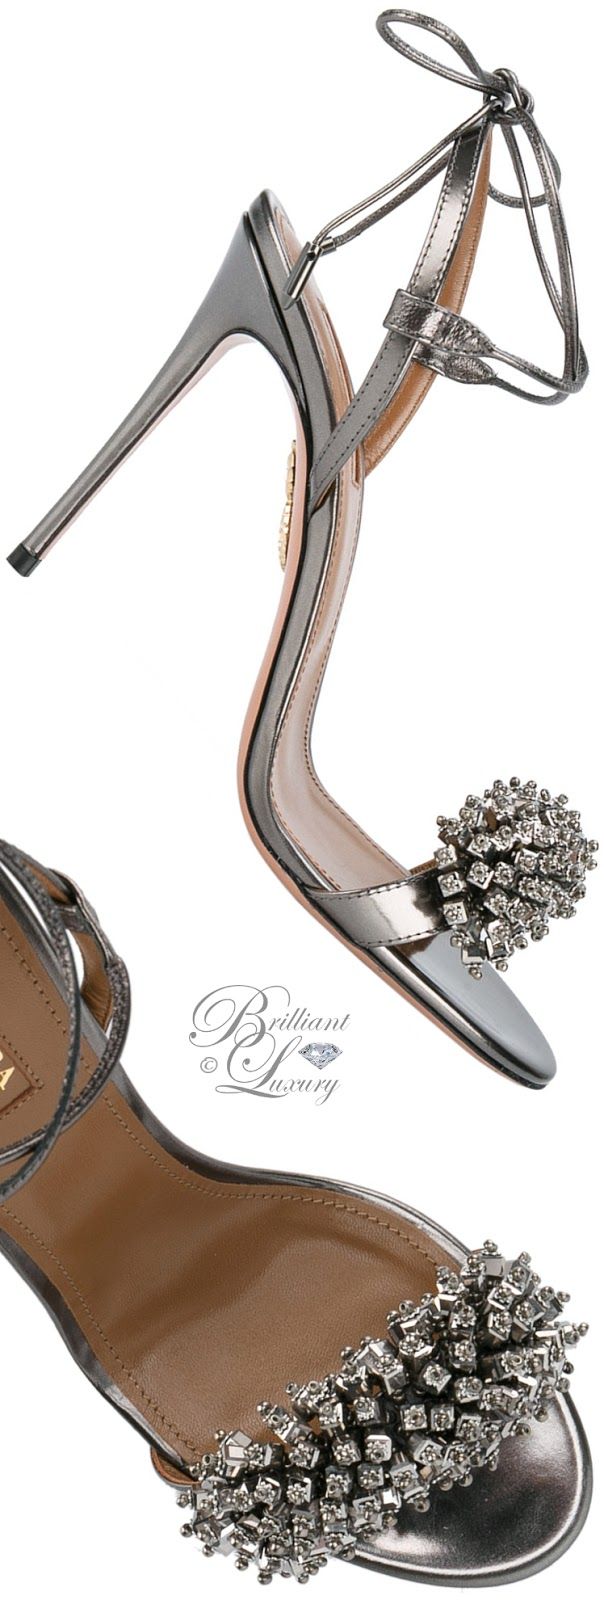 Brilliant Luxury ♦ Aquazzura Crystal-Embellished Monaco Sandals